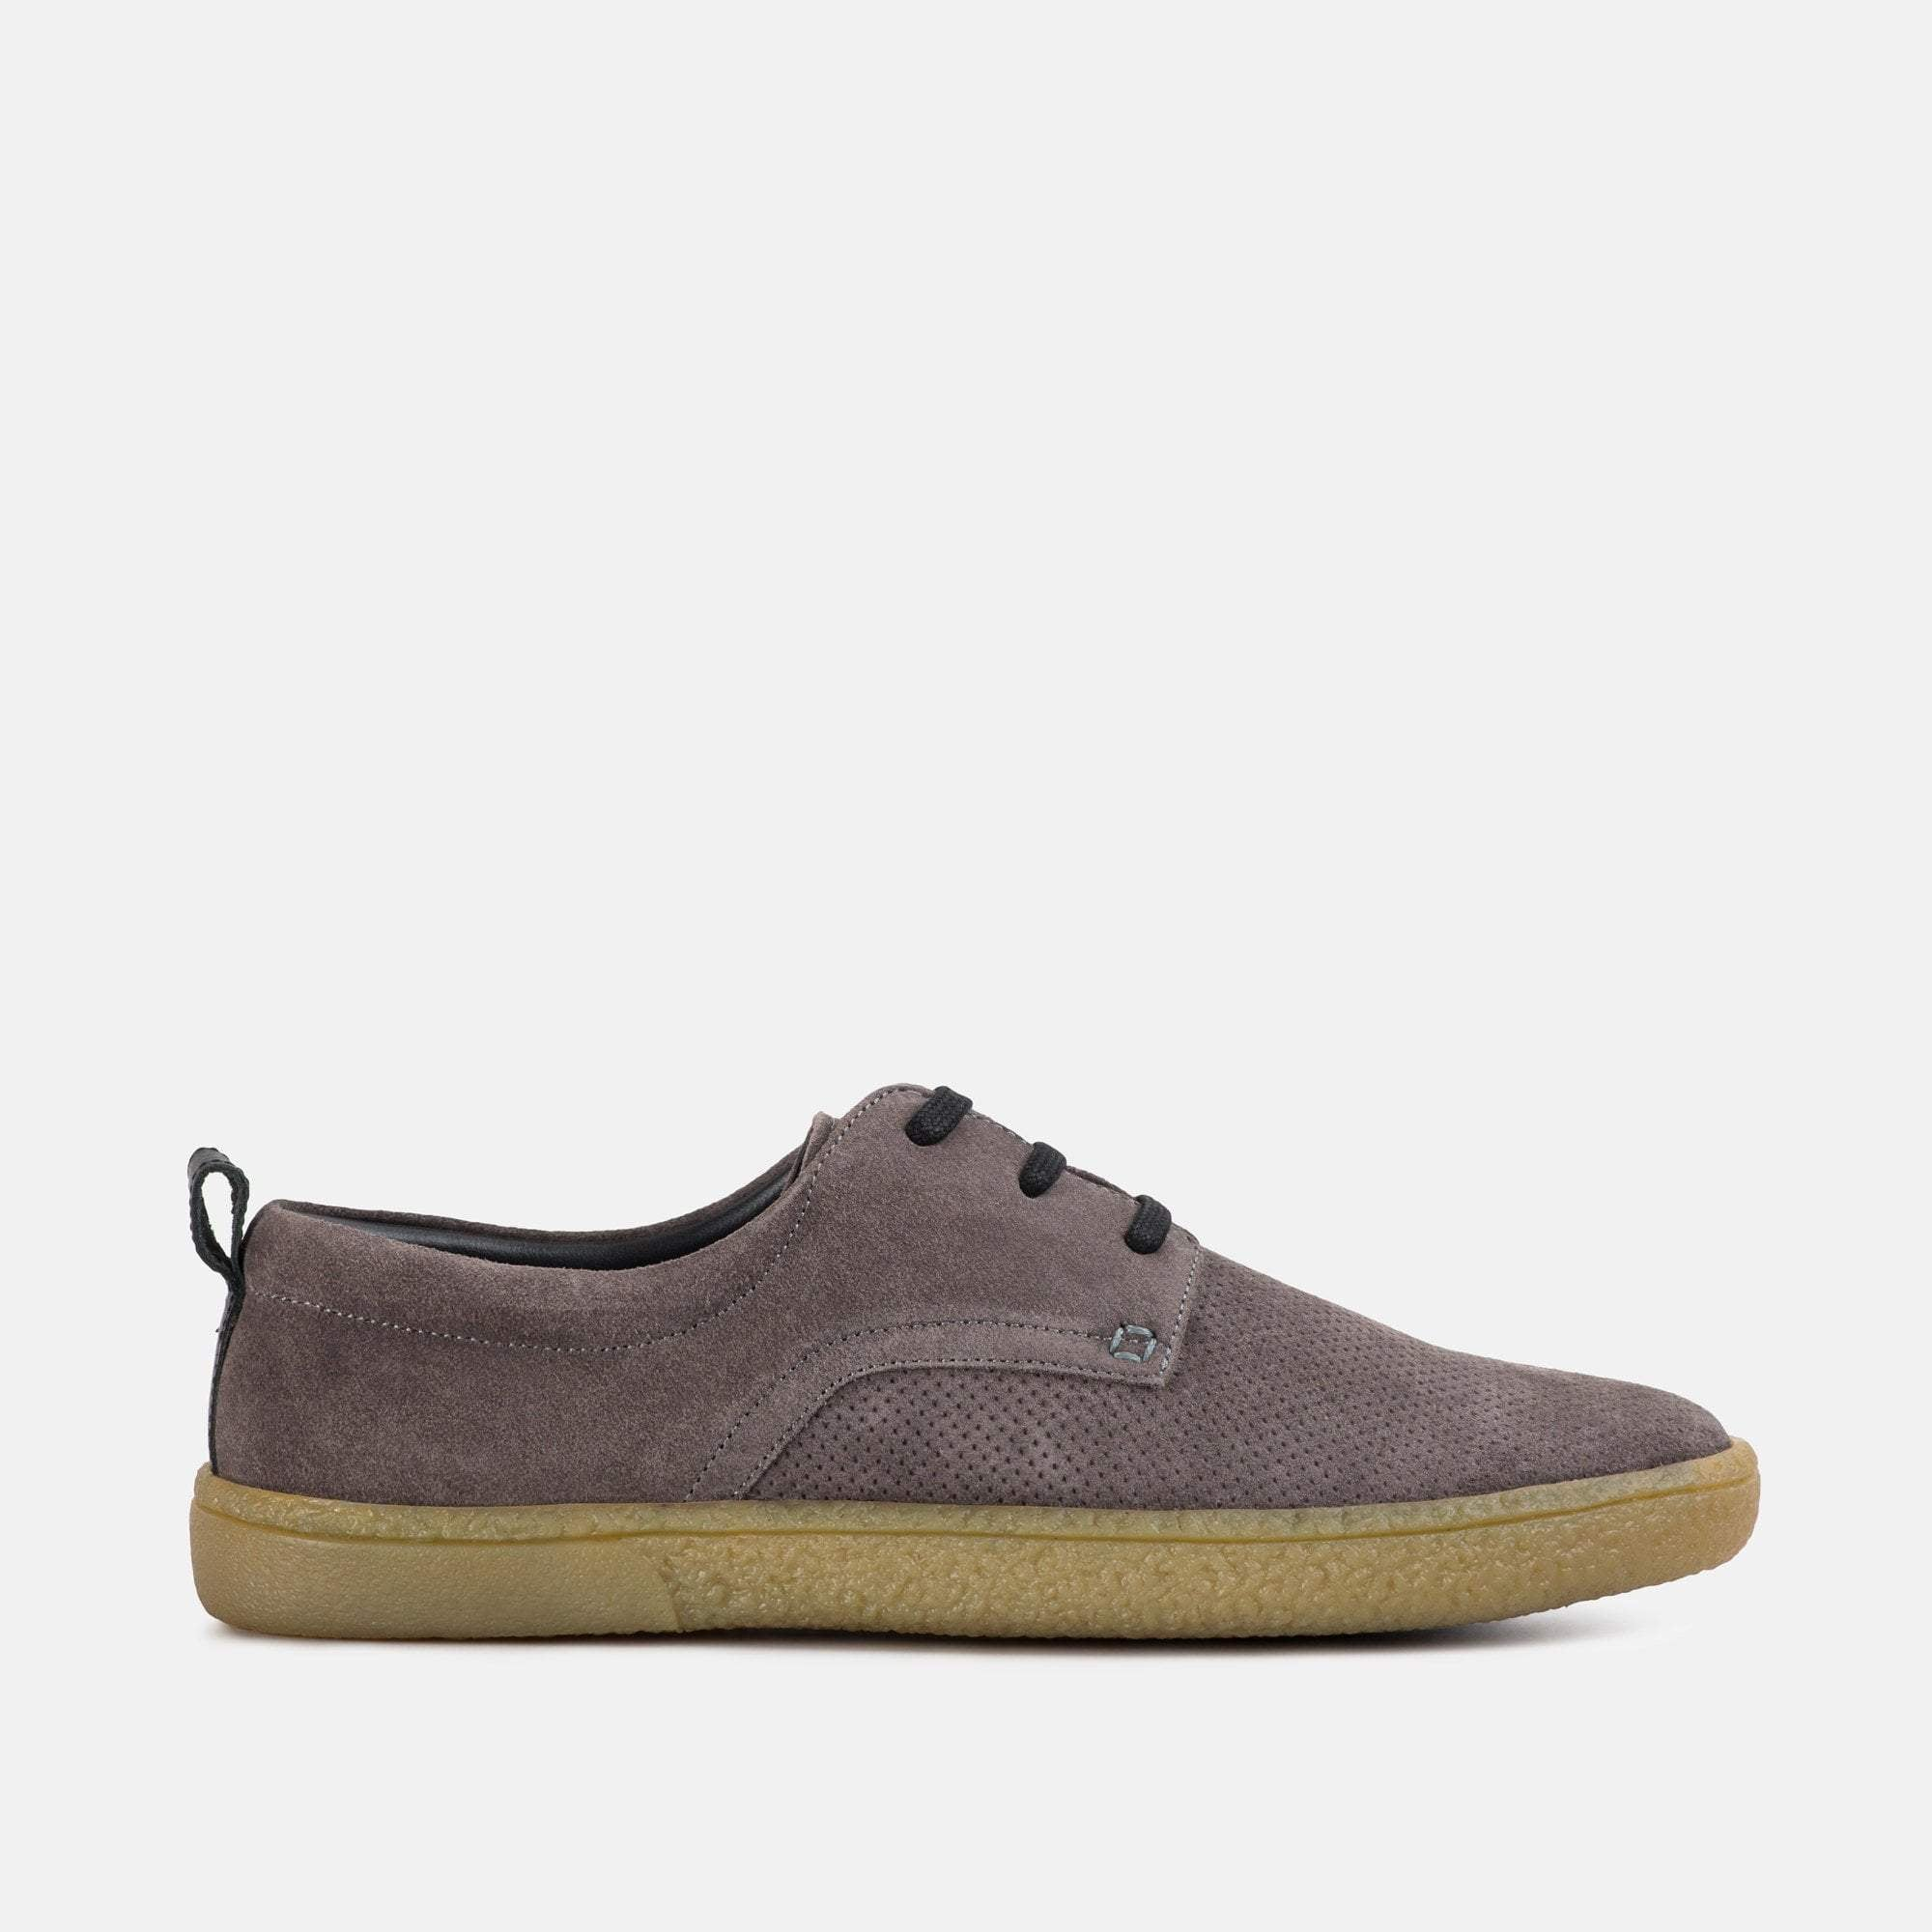 Redfoot Footwear UK 6 / EURO 39 / US 7 / Stone / Suede MARTIN STONE